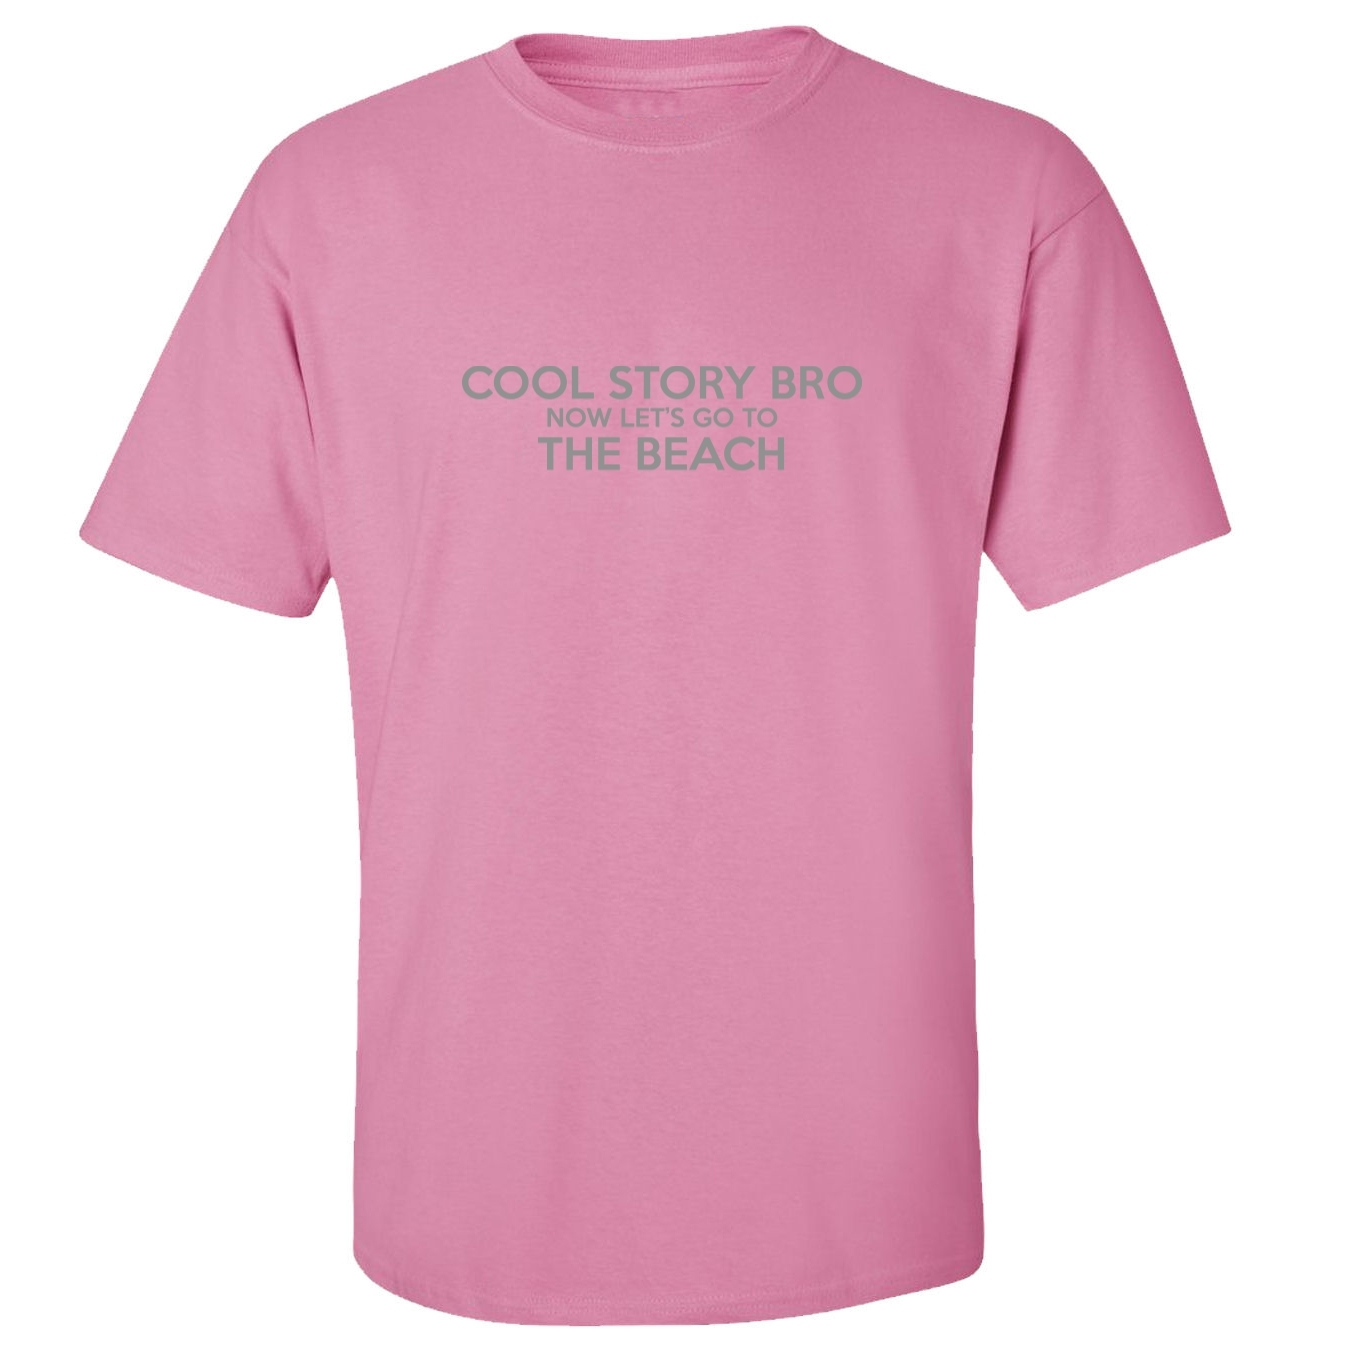 Mashed Clothing Cool Story Bro Let's Go To Beach Adult T-Shirt at Sears.com